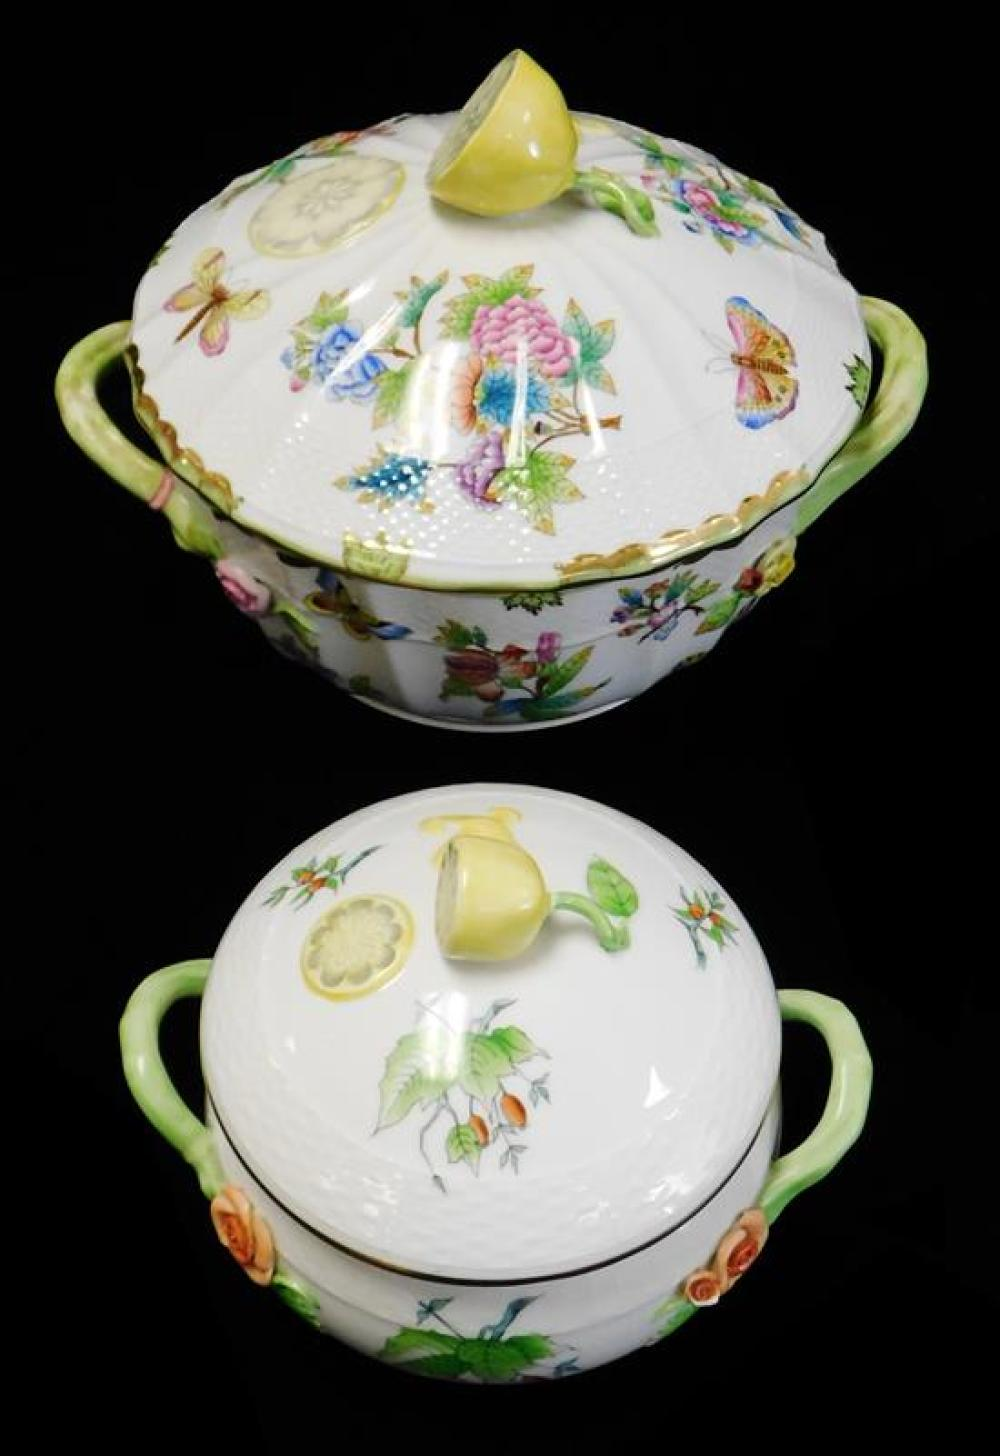 CHINA: Two Herend tureens with lemon finials including